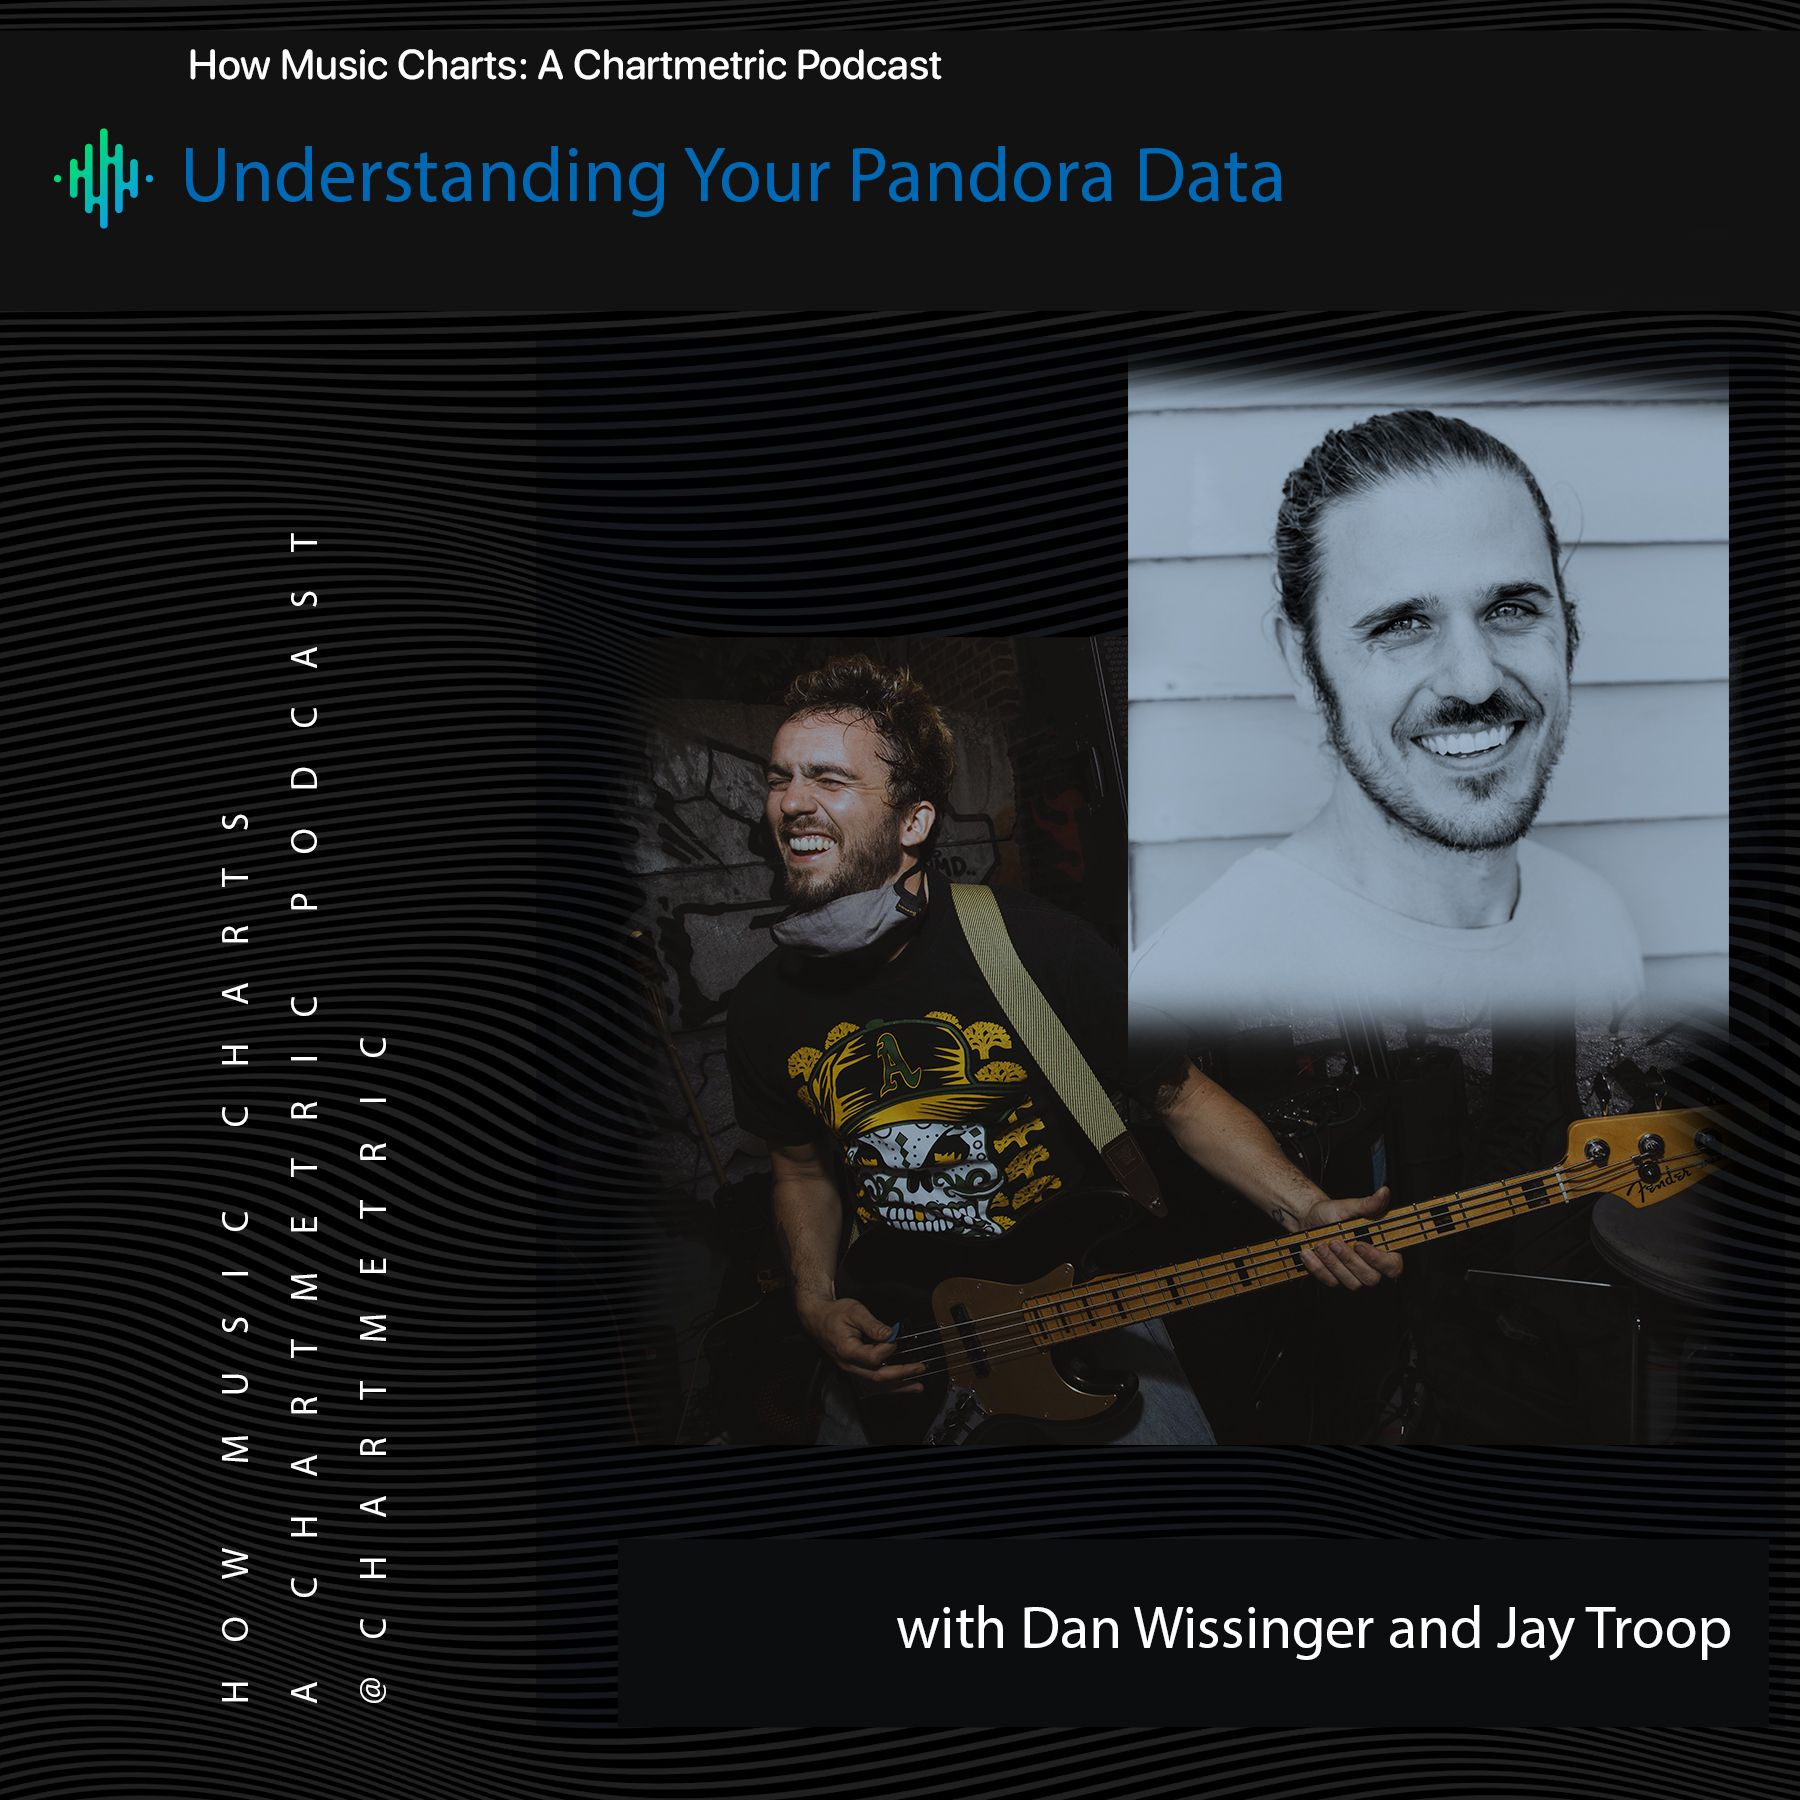 Understanding Your Pandora Data With Dan Wissinger and Jay Troop